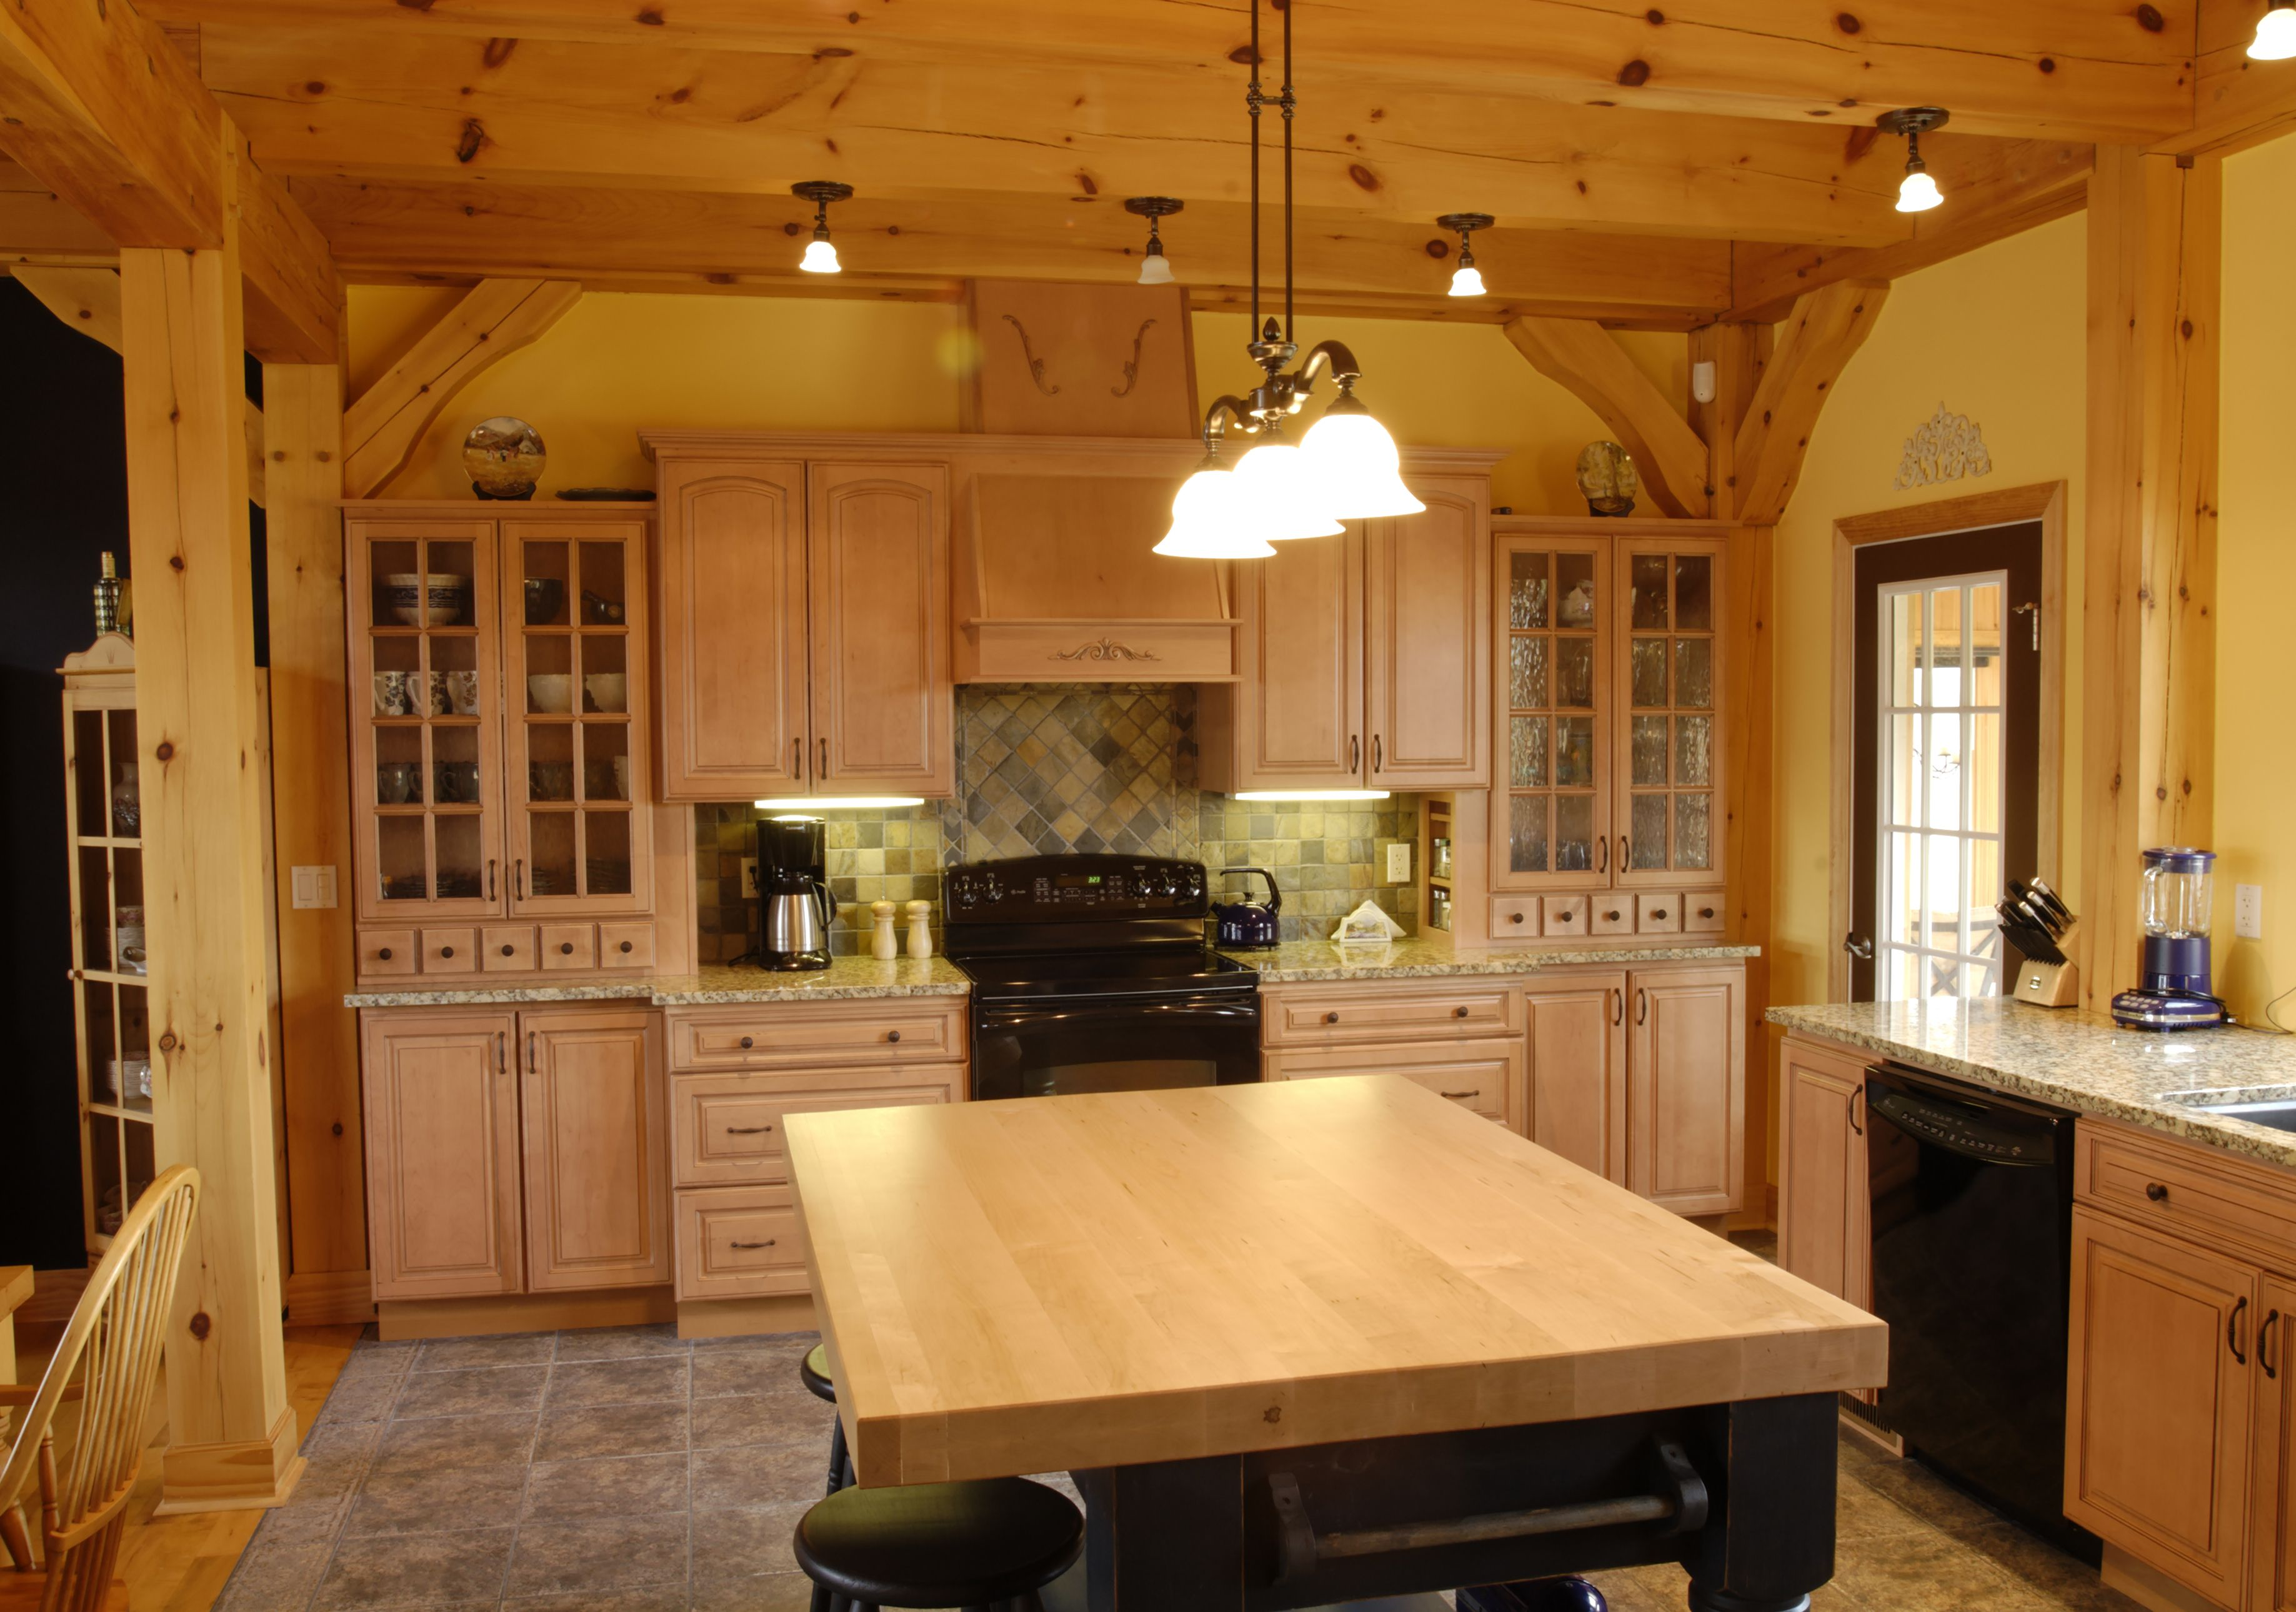 Beautiful Discovery Dream Homes Timber Frame Kitchen in our Beautiful Windermere Home  #Kitchen #Windermere #TimberFrame #Custom #DiscoveryDreamHomes